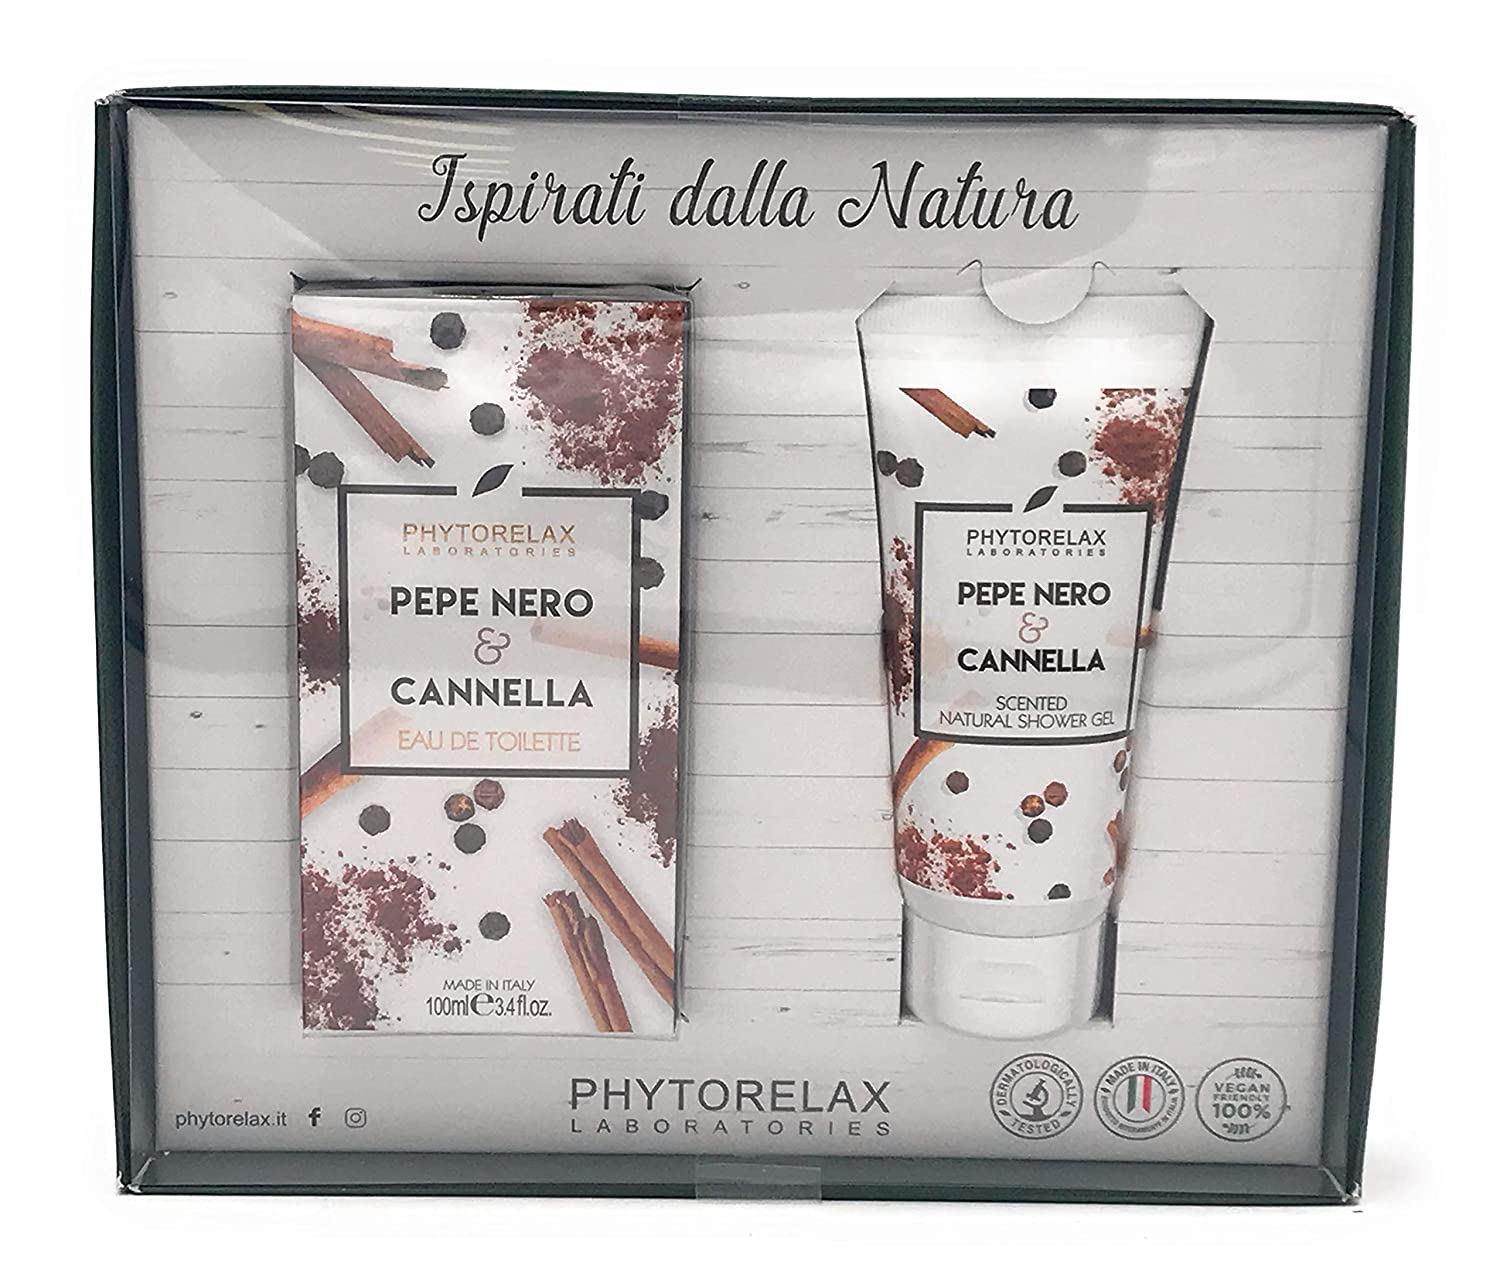 Phytorelax Confezione Profumo Pepe Nero & Cannella 100ml + Shower Gel 100ml | Idea Regalo Harbor